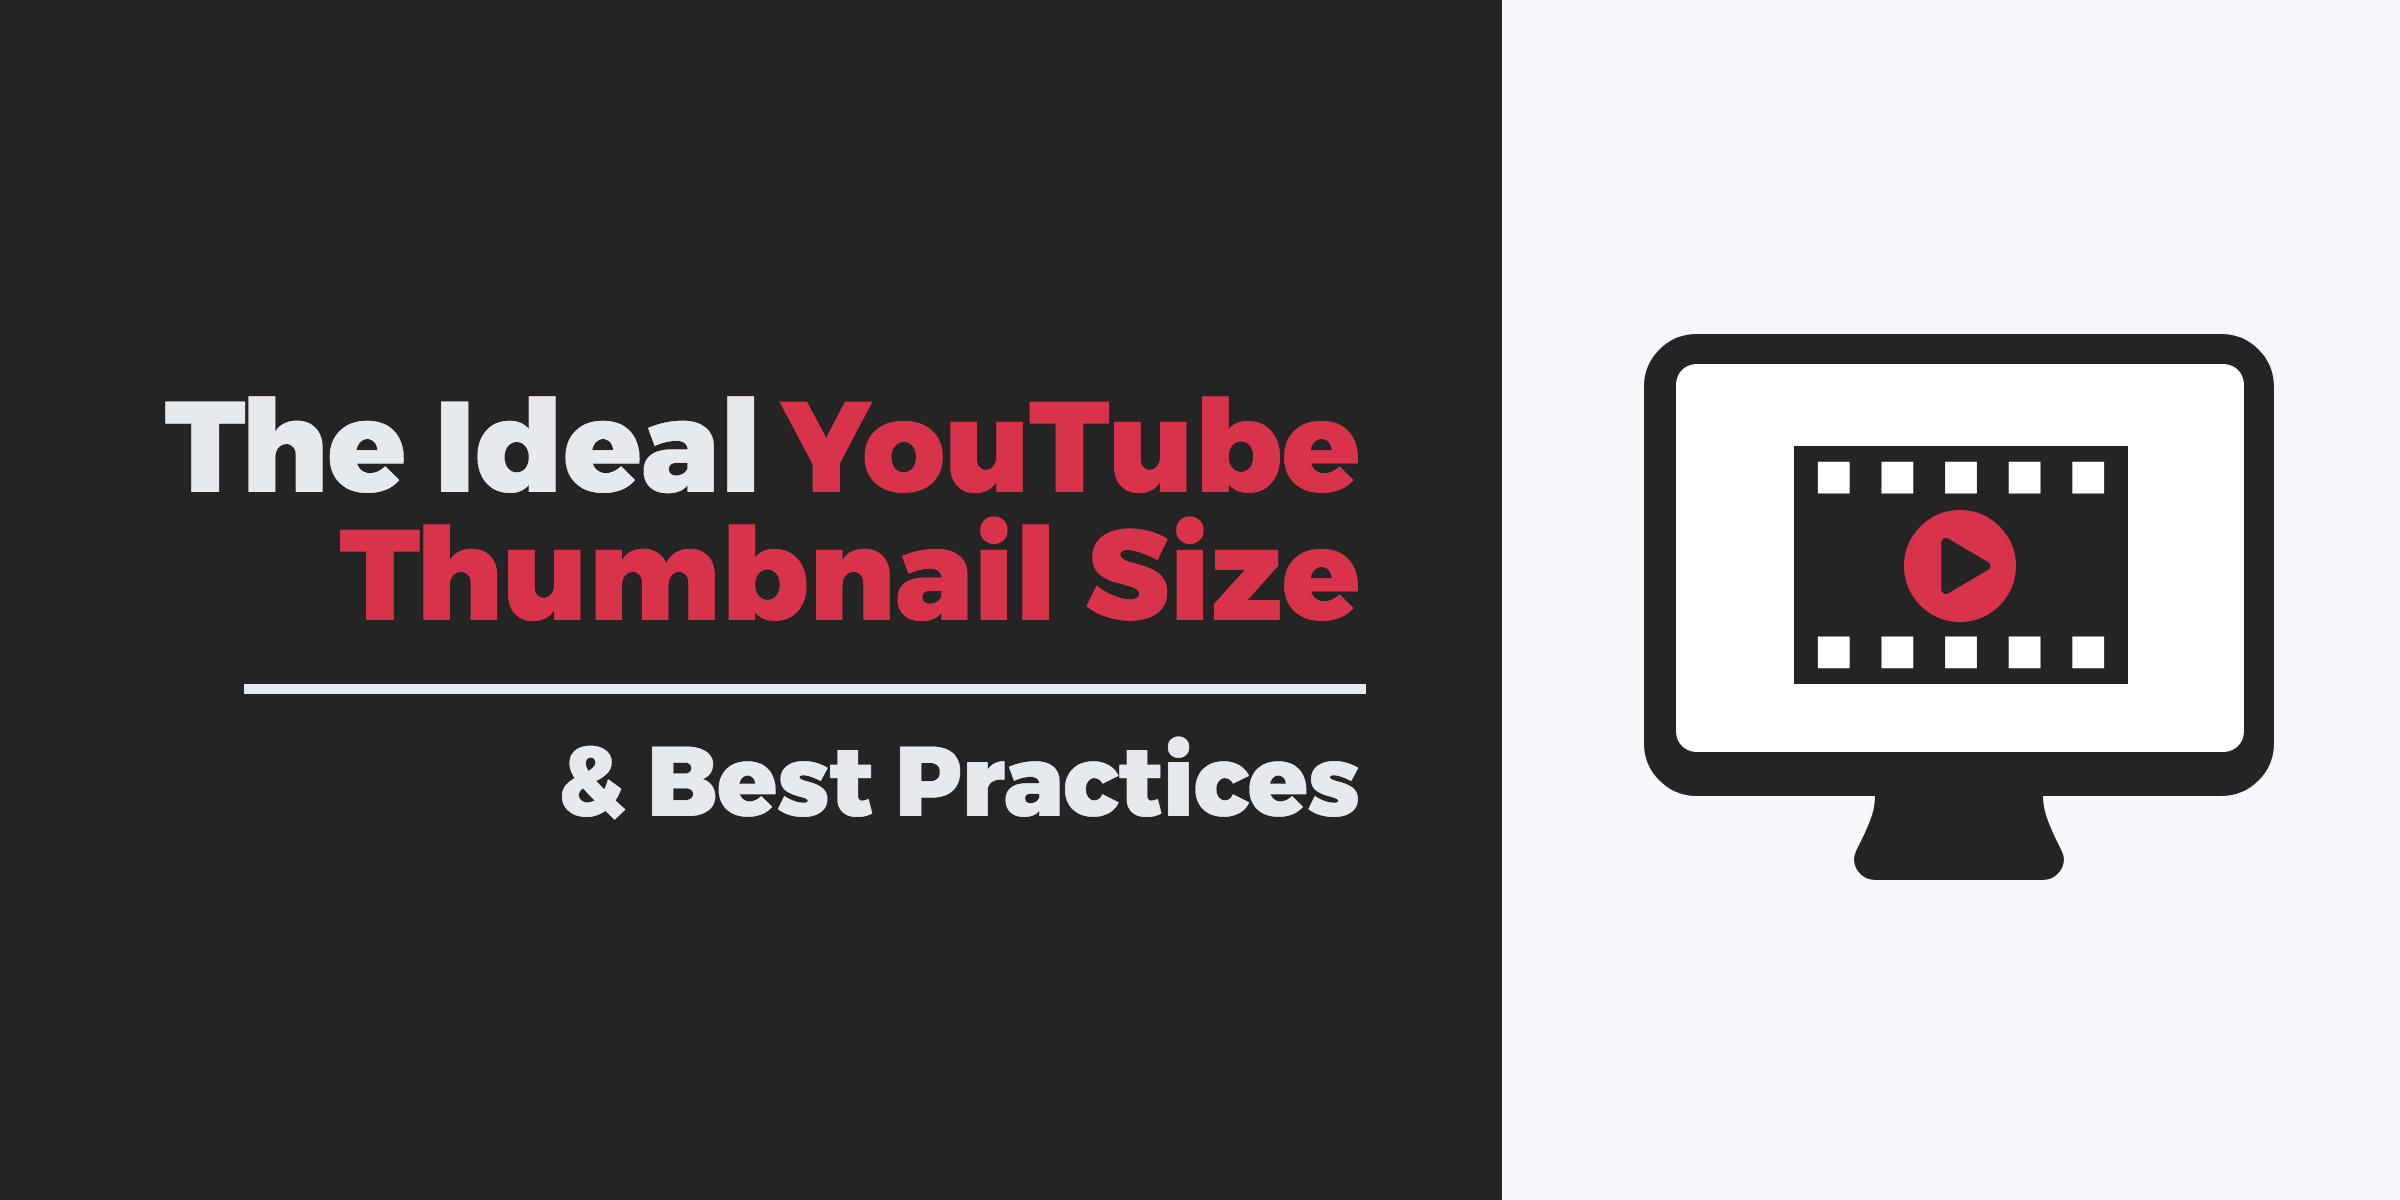 The Ideal YouTube Thumbnail Size & Best Practices.